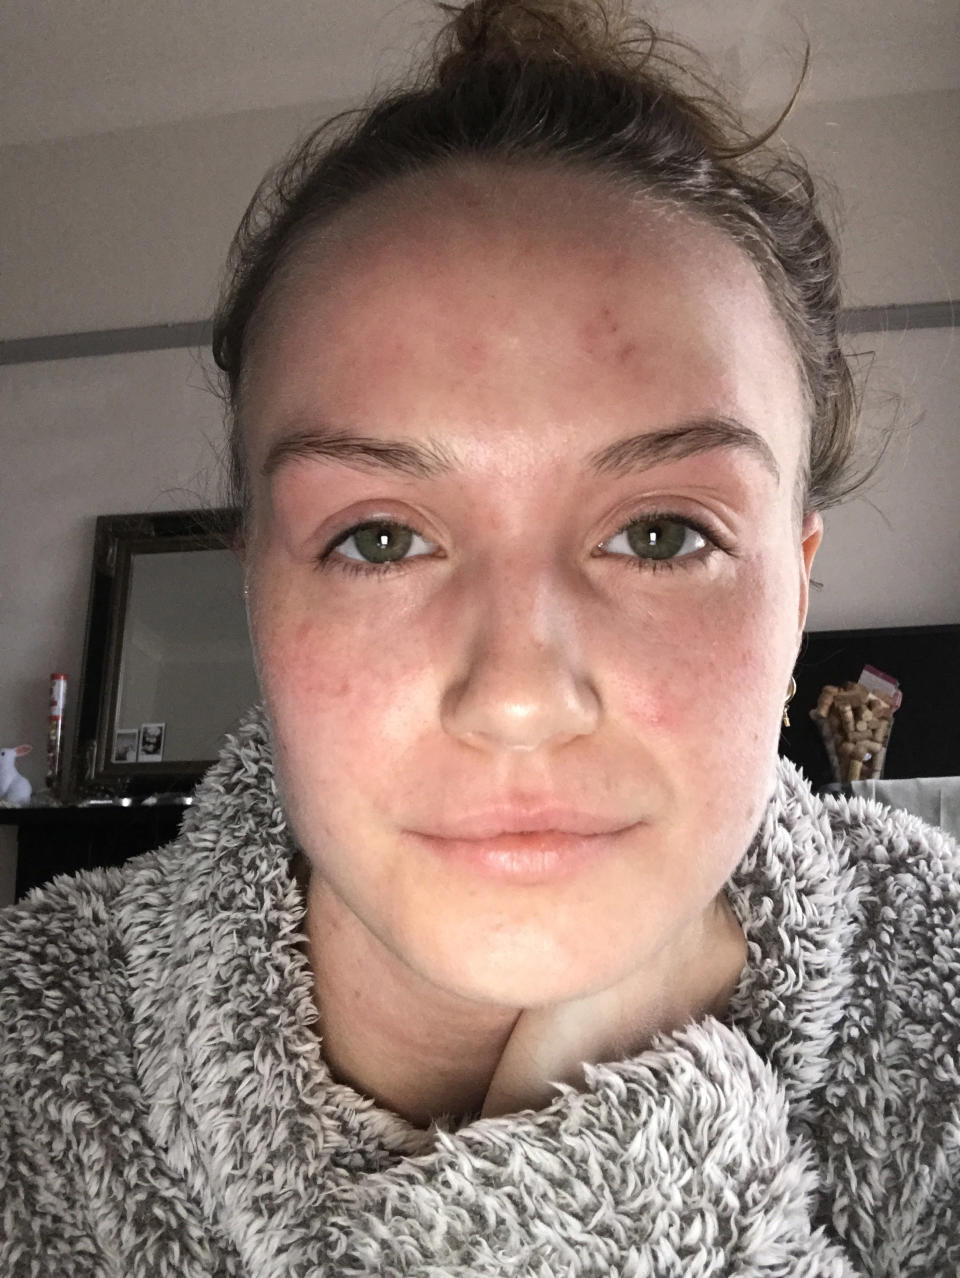 Woman with eczema on her face and eyelids